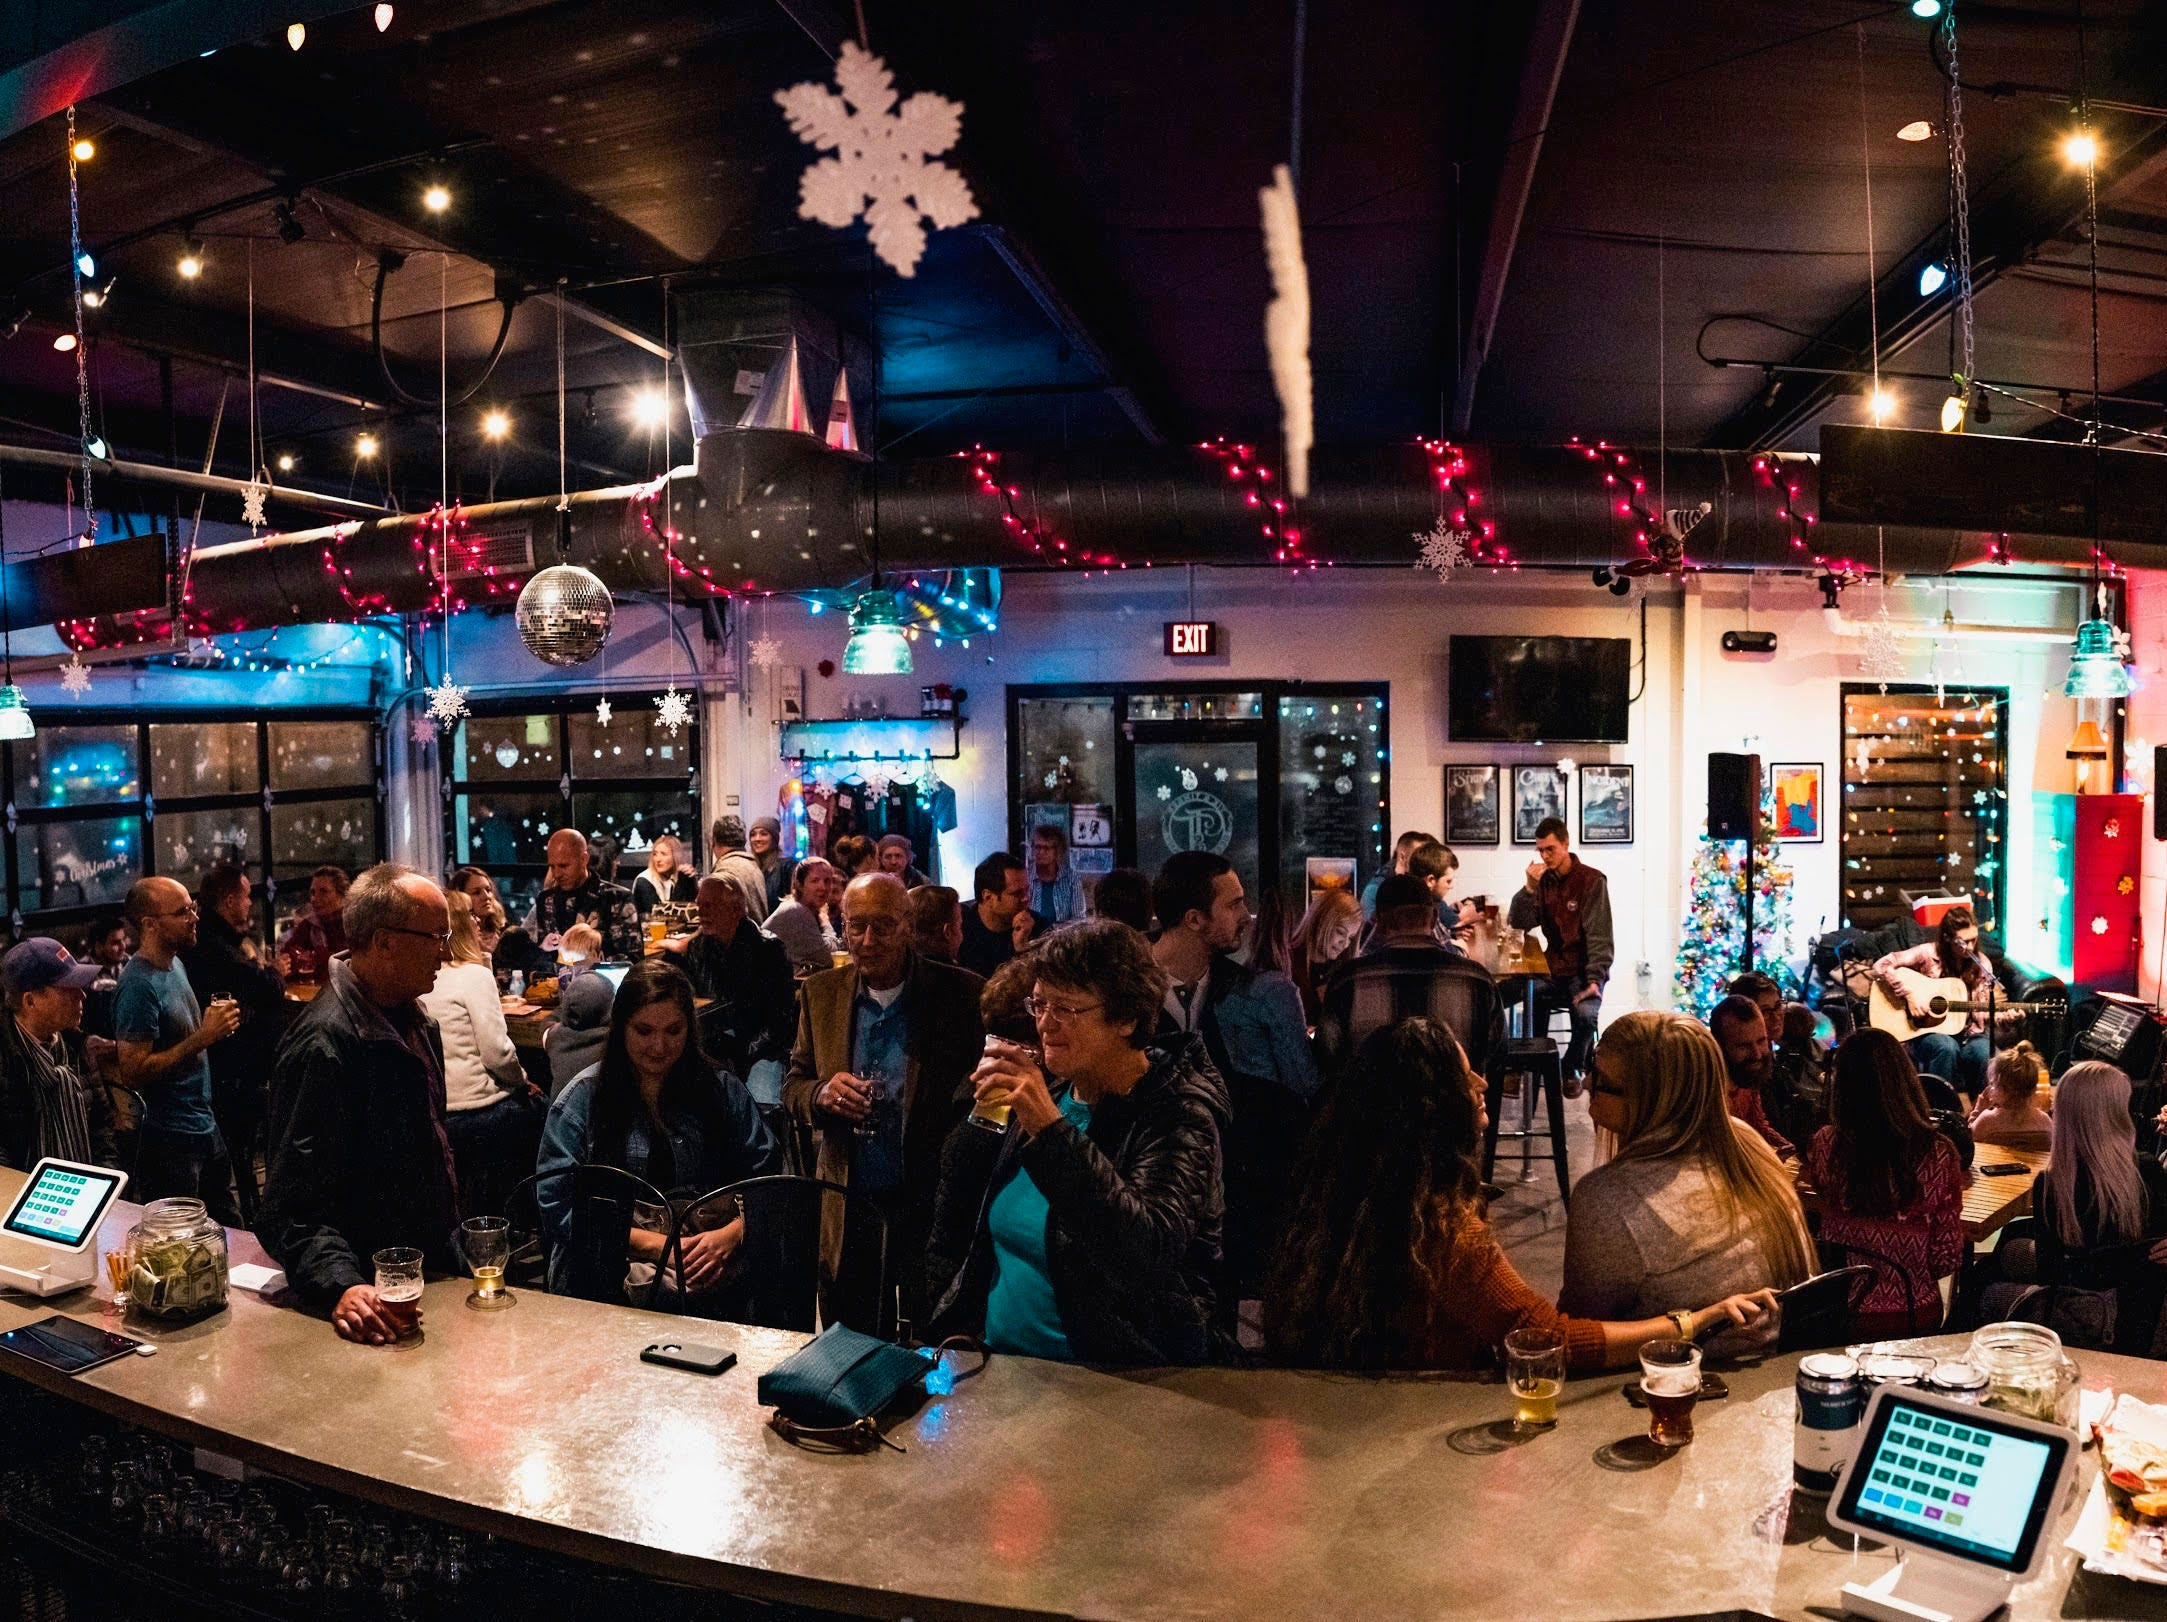 Tie & Timber has become a spot to hear live music and hang out in Rountree.